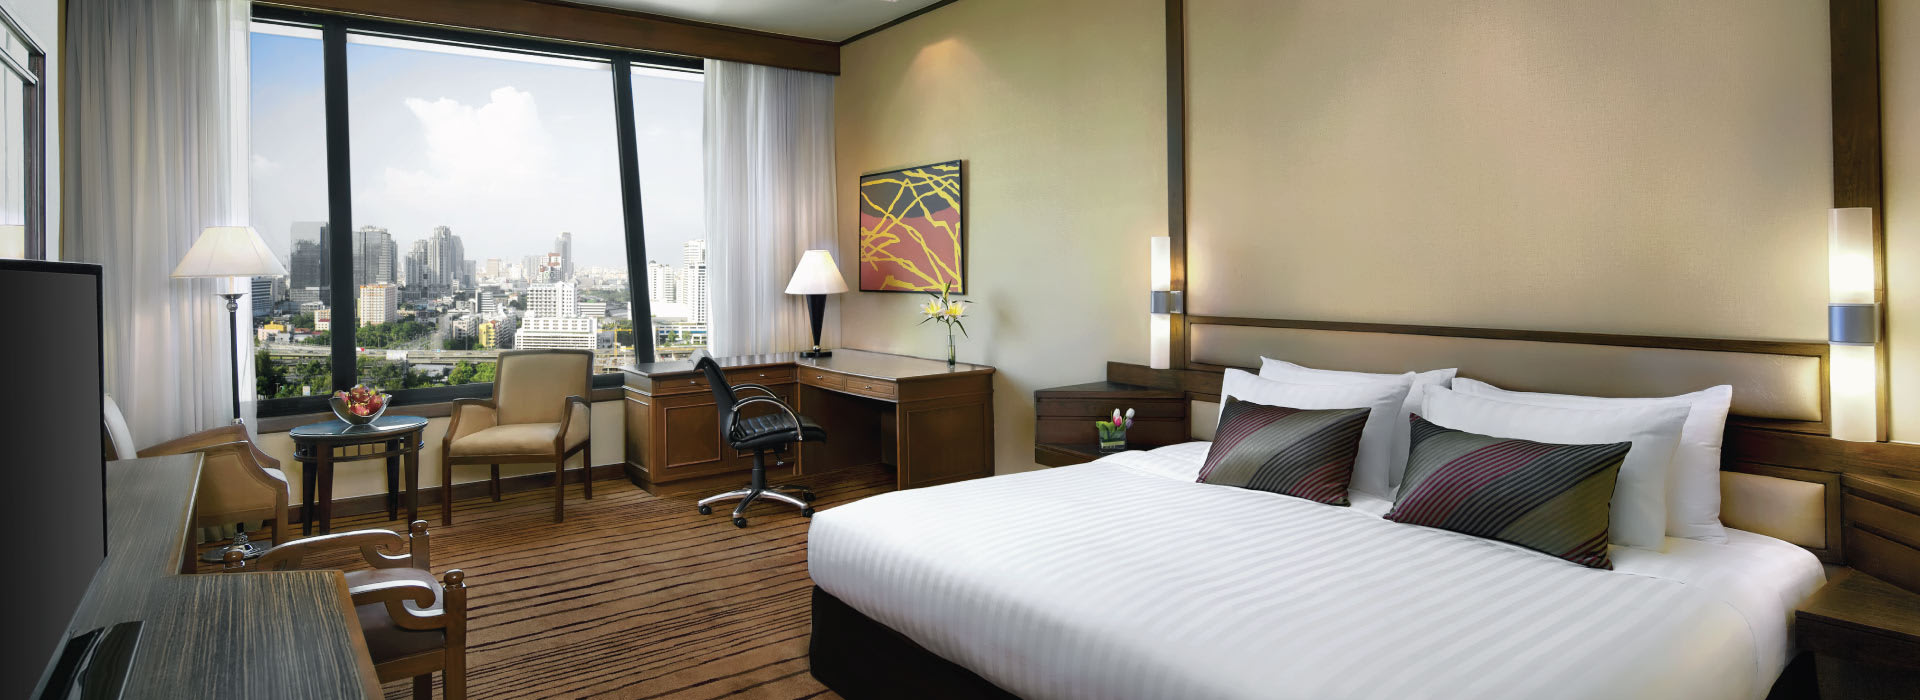 Interior of an executive room ar one of the Bangkok City Hotels